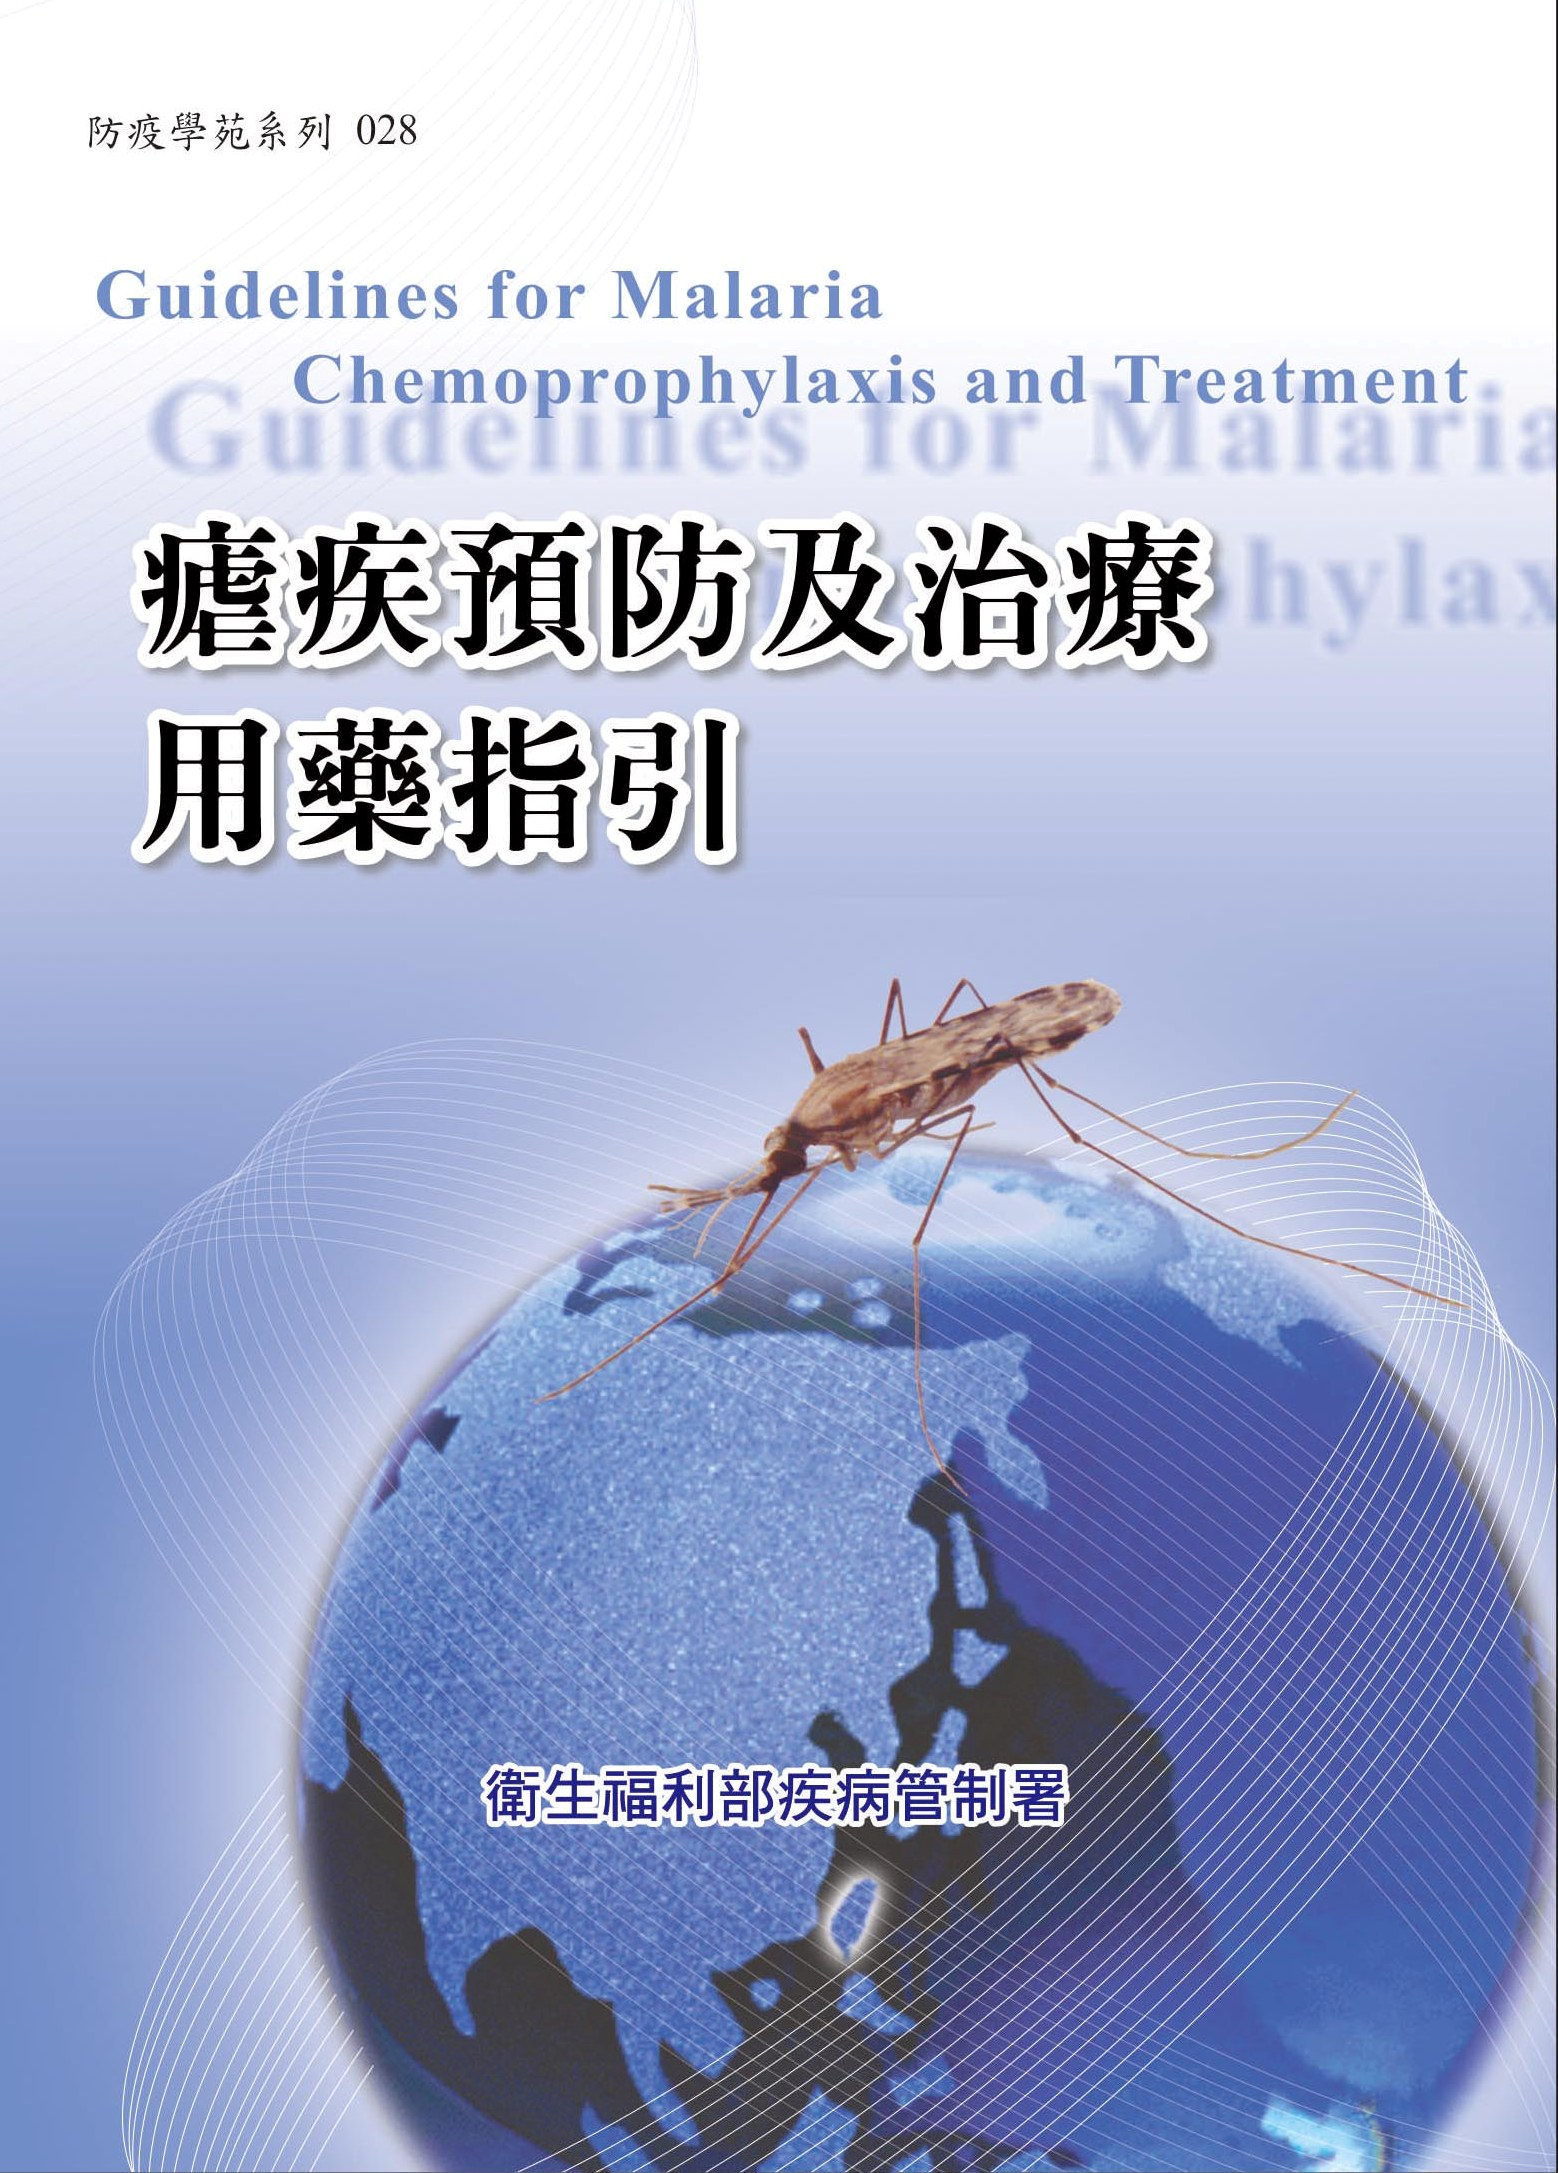 Guidelines for Malaria Chemoprophylaxis and Treatment